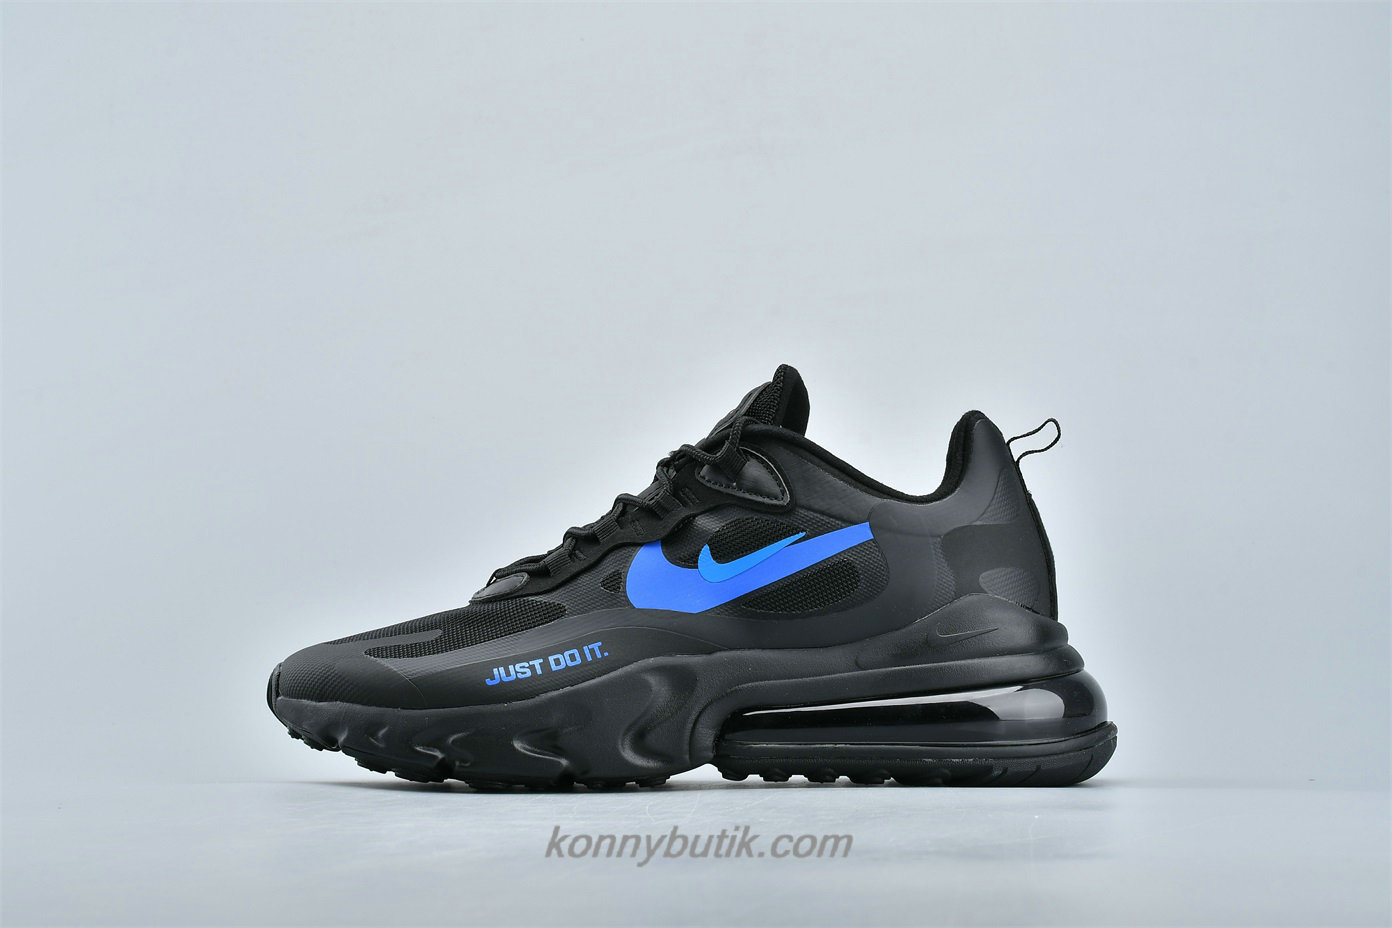 Nike Air Max 270 React Unisex Sko Sort / Blå (CT2203 001)